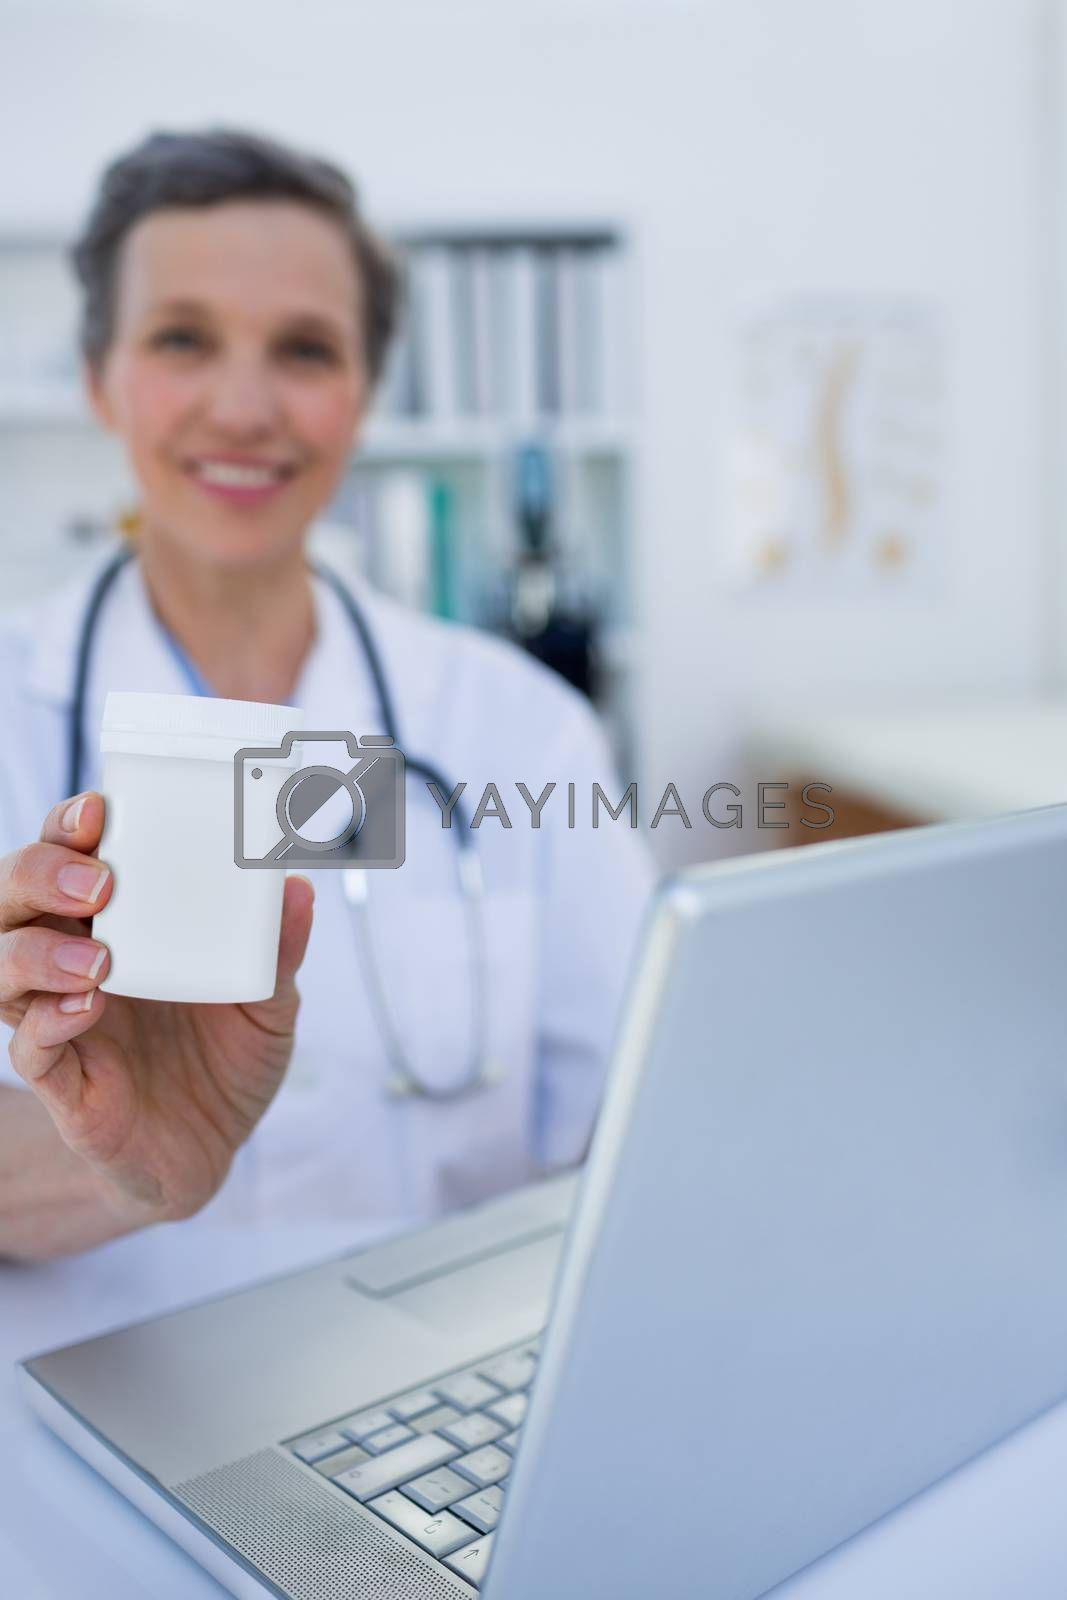 Royalty free image of Female doctor holding a box of pills  by Wavebreakmedia